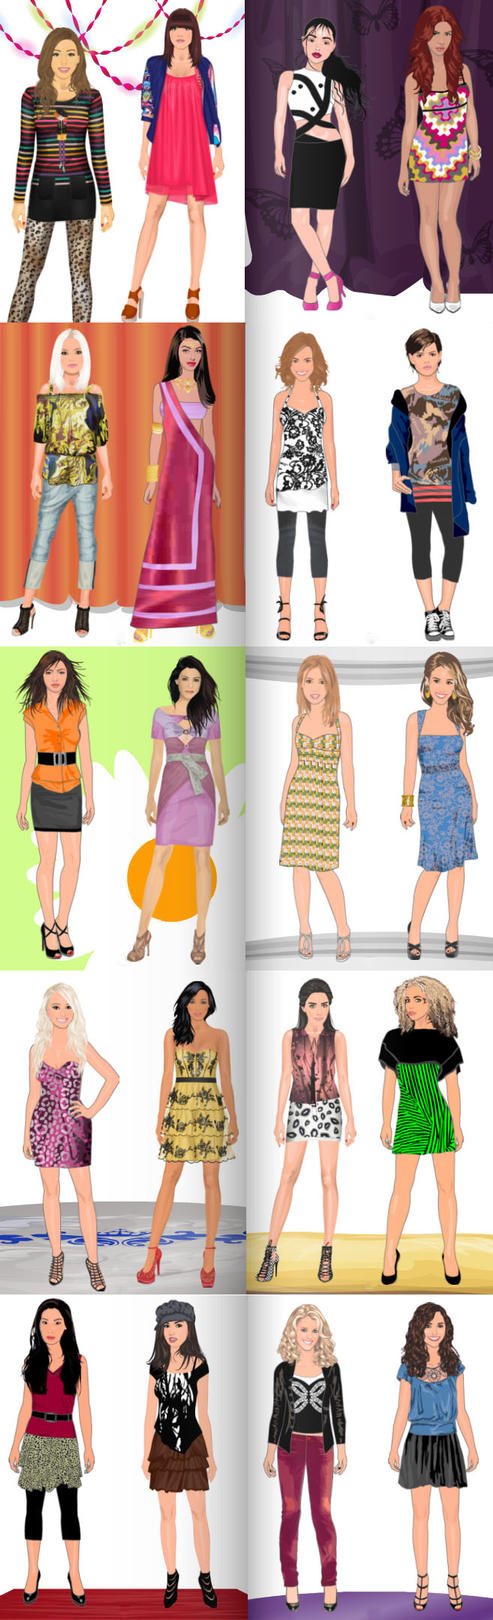 Stardoll-album4 by Isabe11a